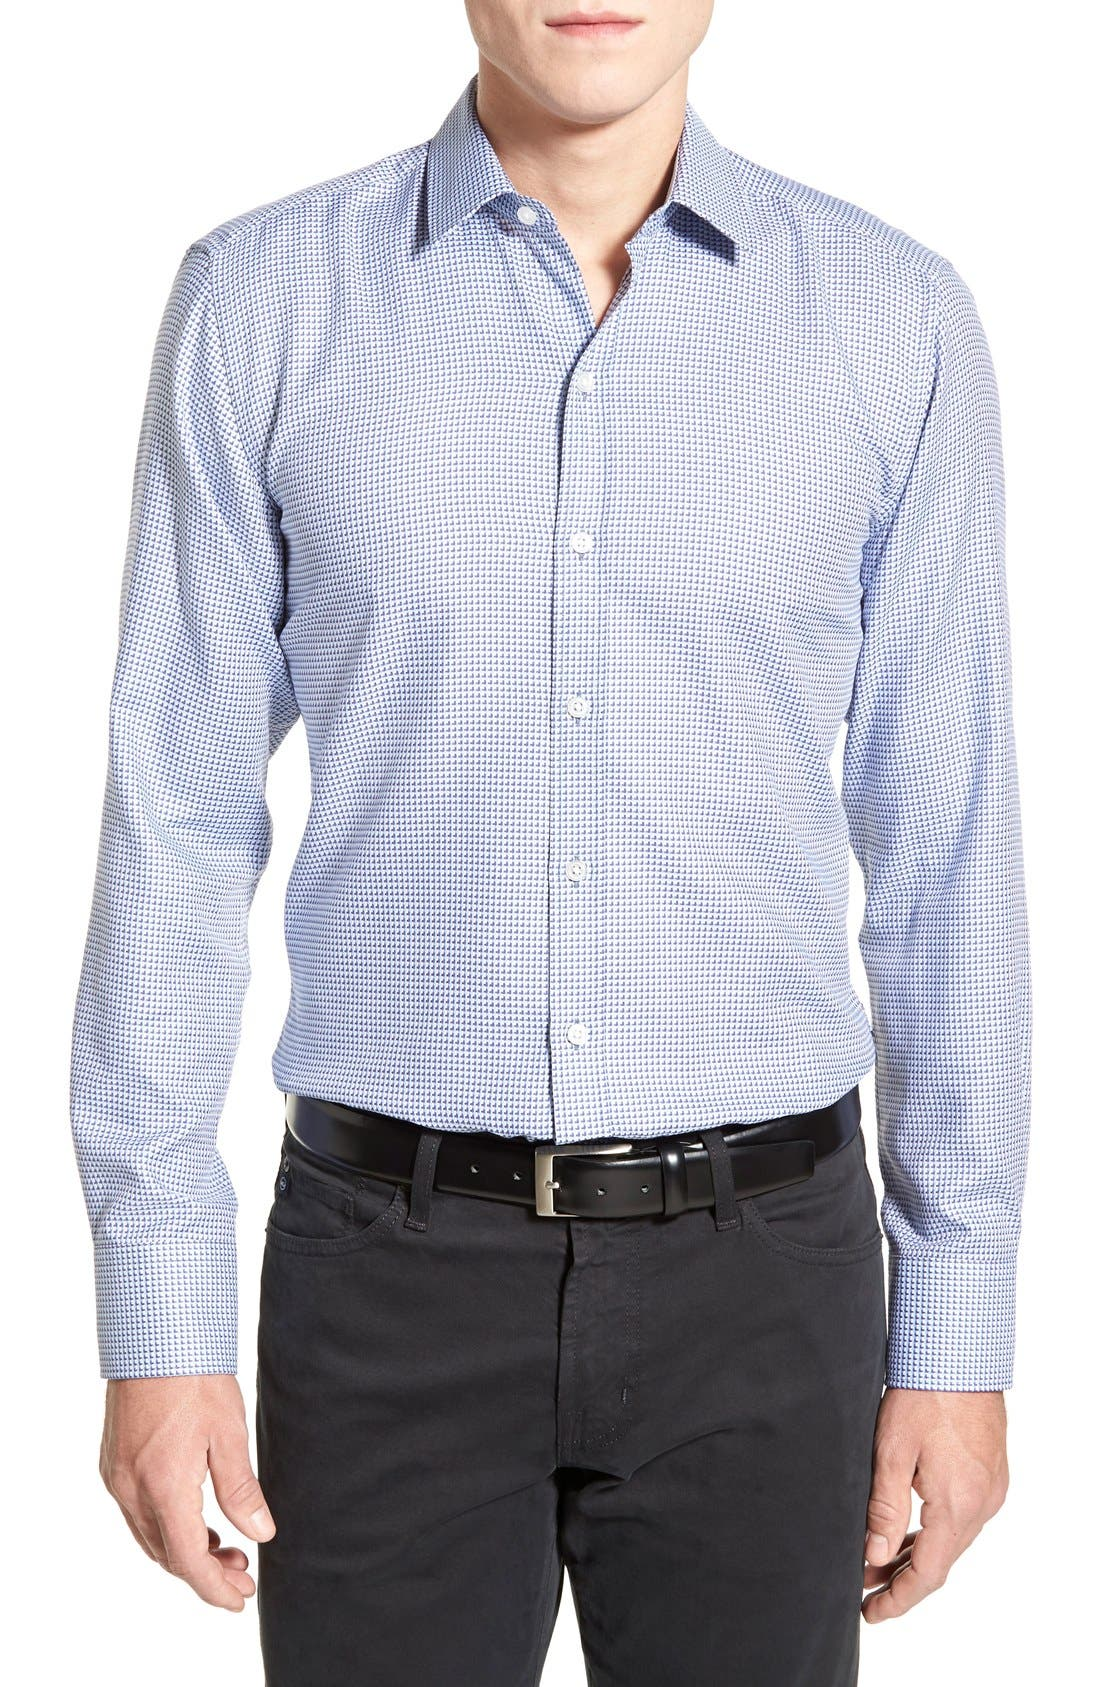 Alternate Image 1 Selected - BOSS 'Robbie' Slim Fit Sport Shirt